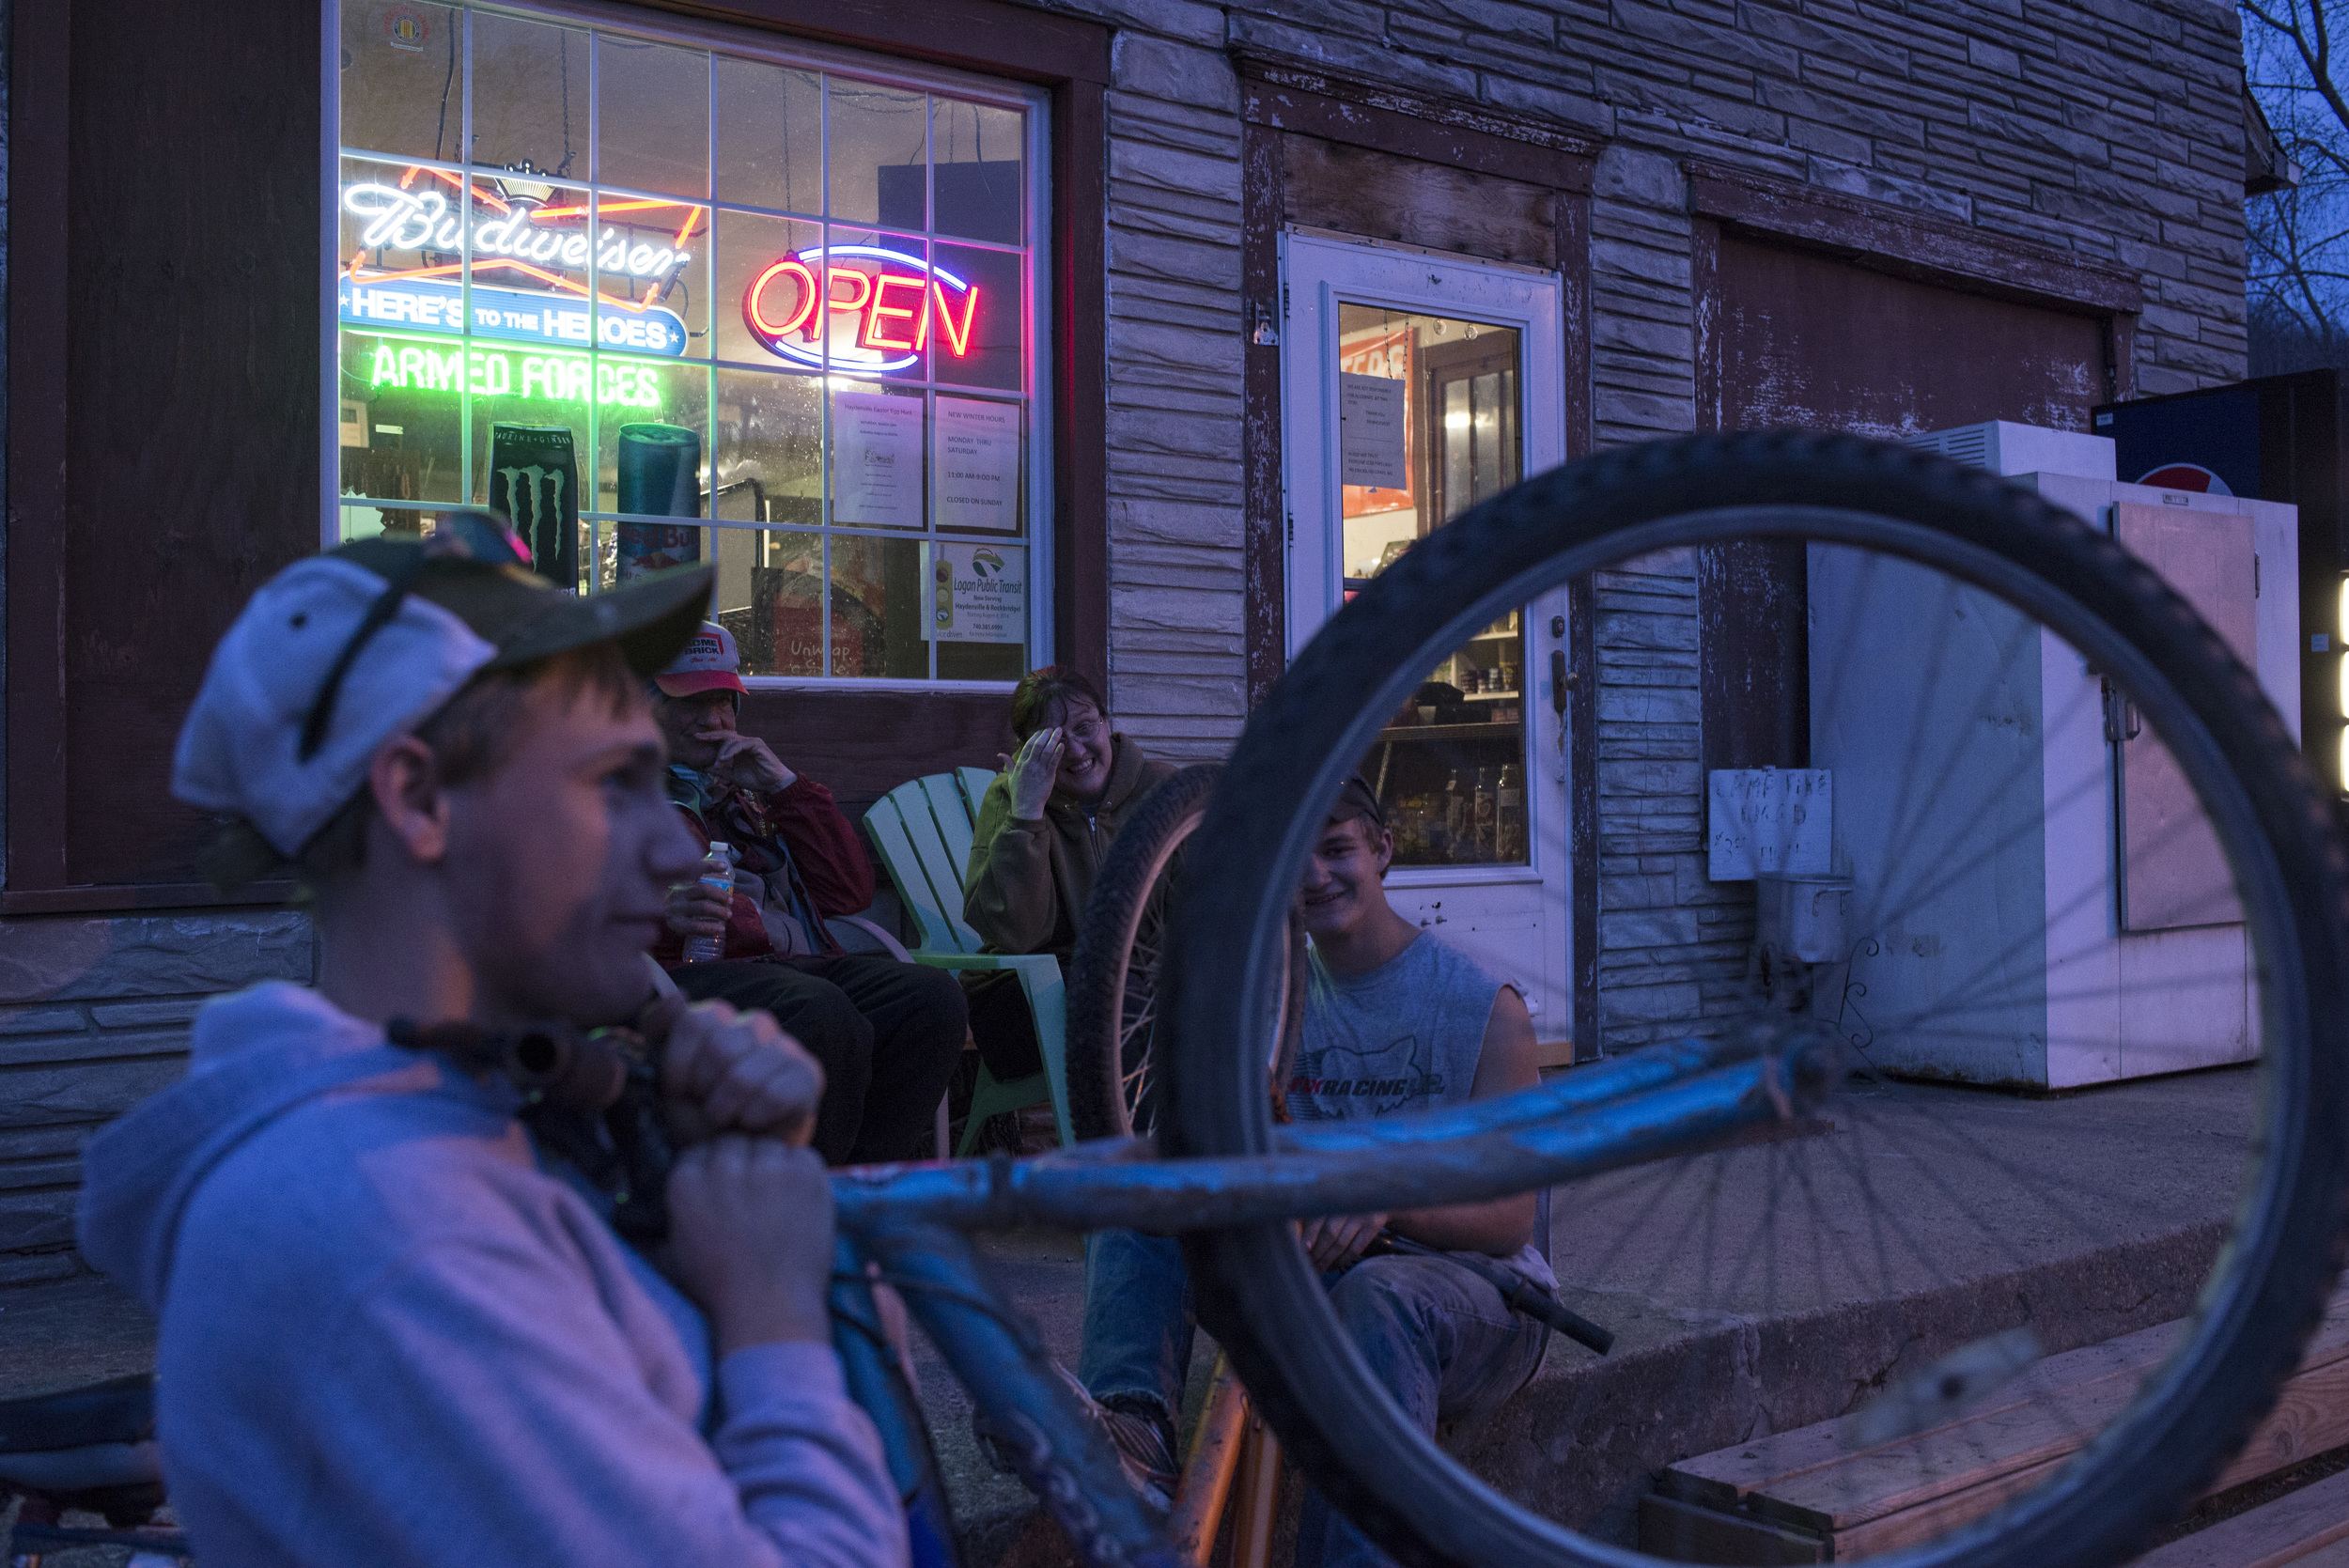 (Left to right) Jay Lambert, 17, Grover Browns, Kim Myers, and Lawrence Dotson, 17, hang out and chat in front of Mel and Kim's Carryout store. As one of only two locally owned businesses in Haydenville, Mel and Kim's also serves as a community gathering place for some residents.